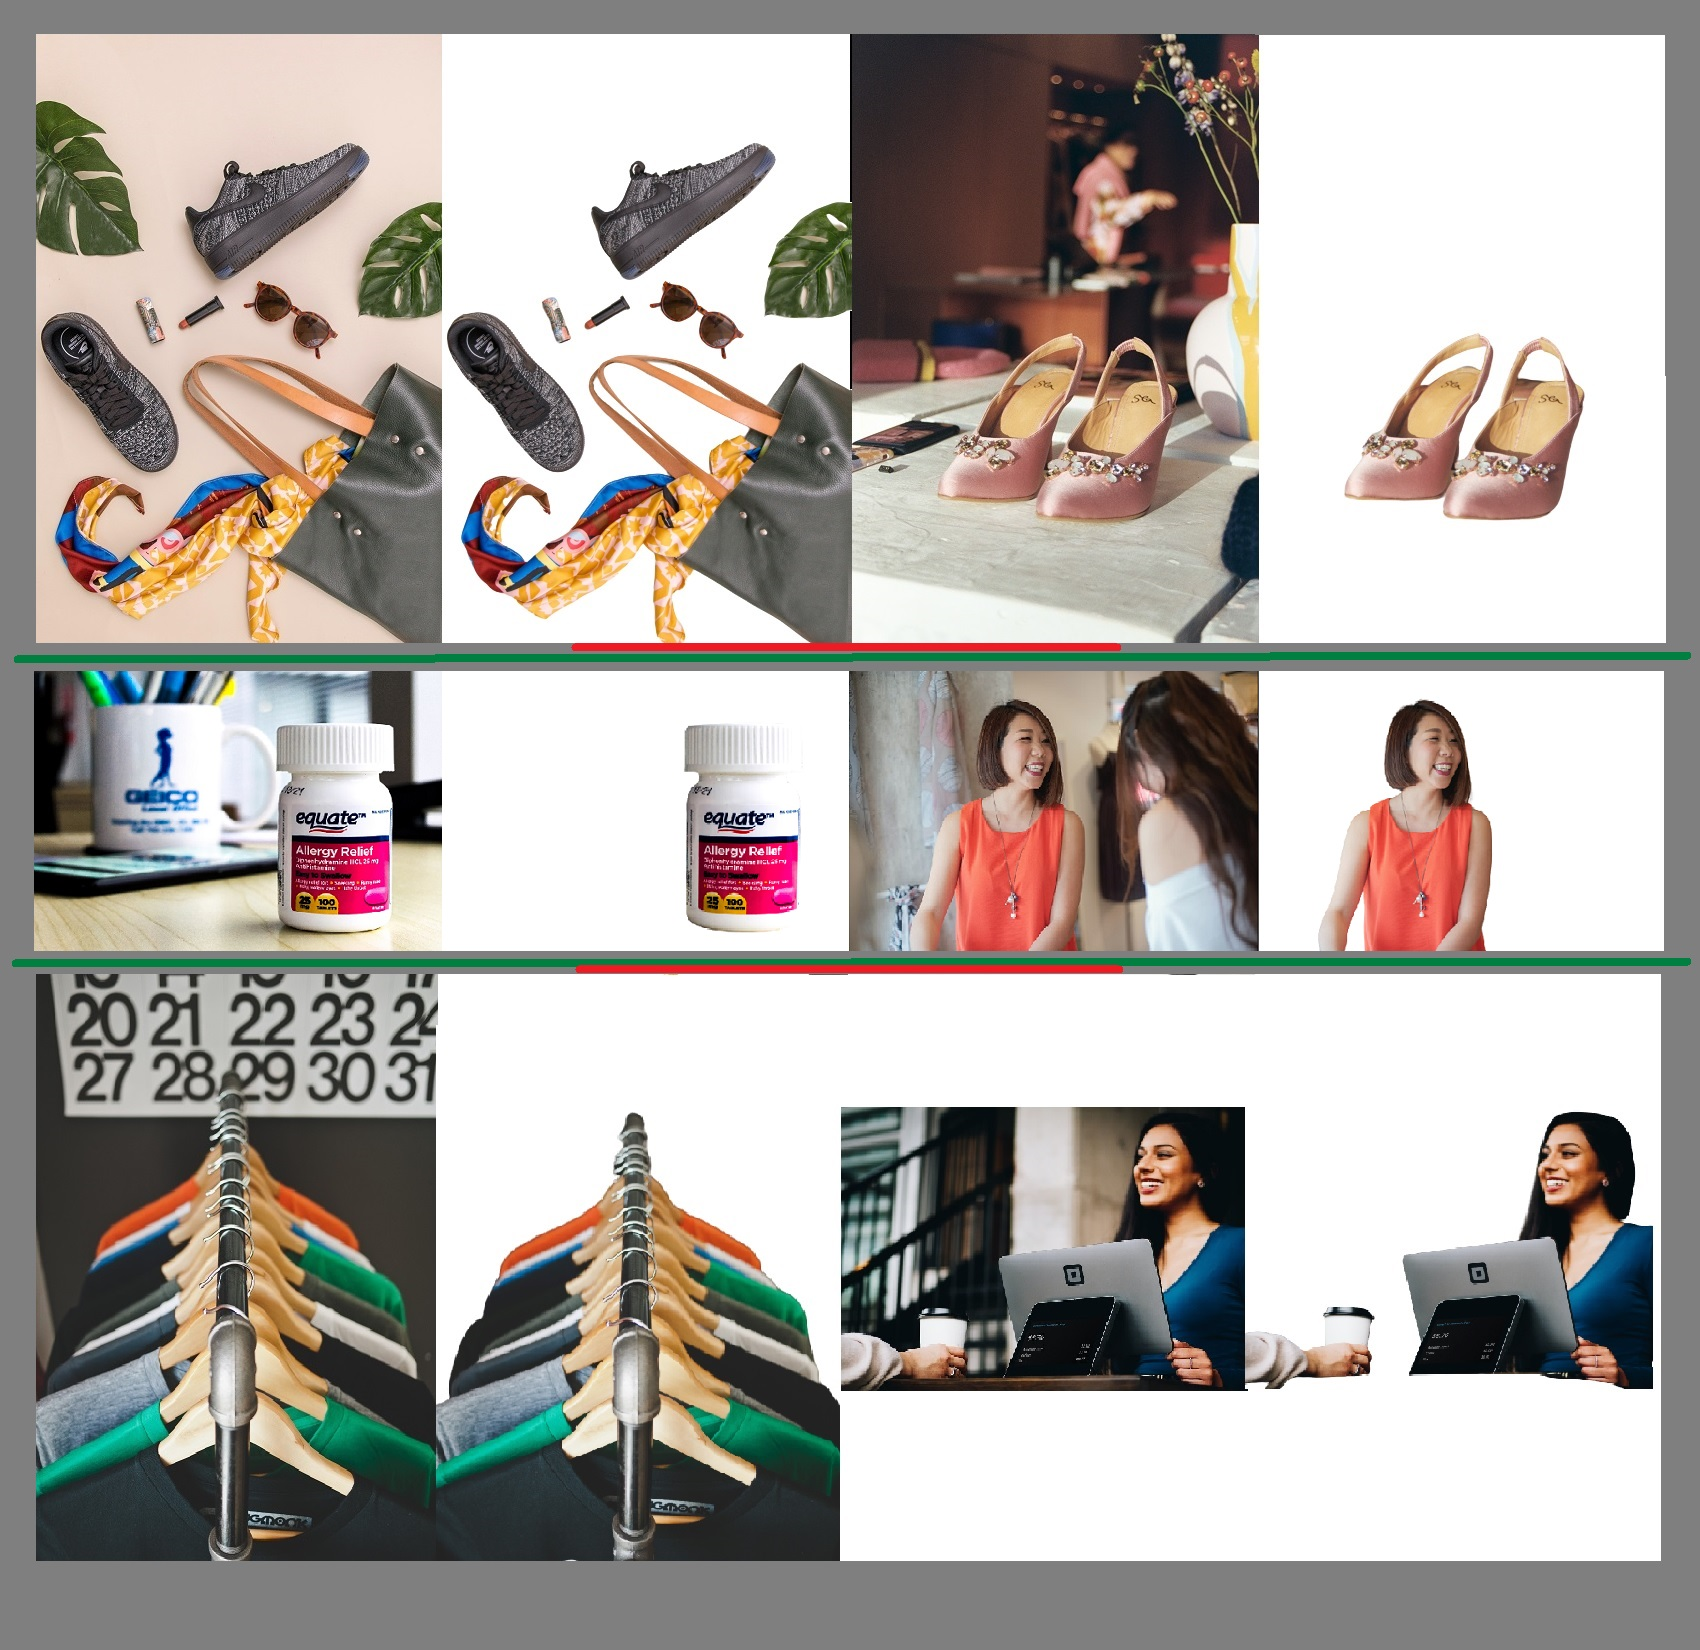 Background Removal,  Remove Background on Images Colorize,  Restore color FAST. GET FREE SAMPLE